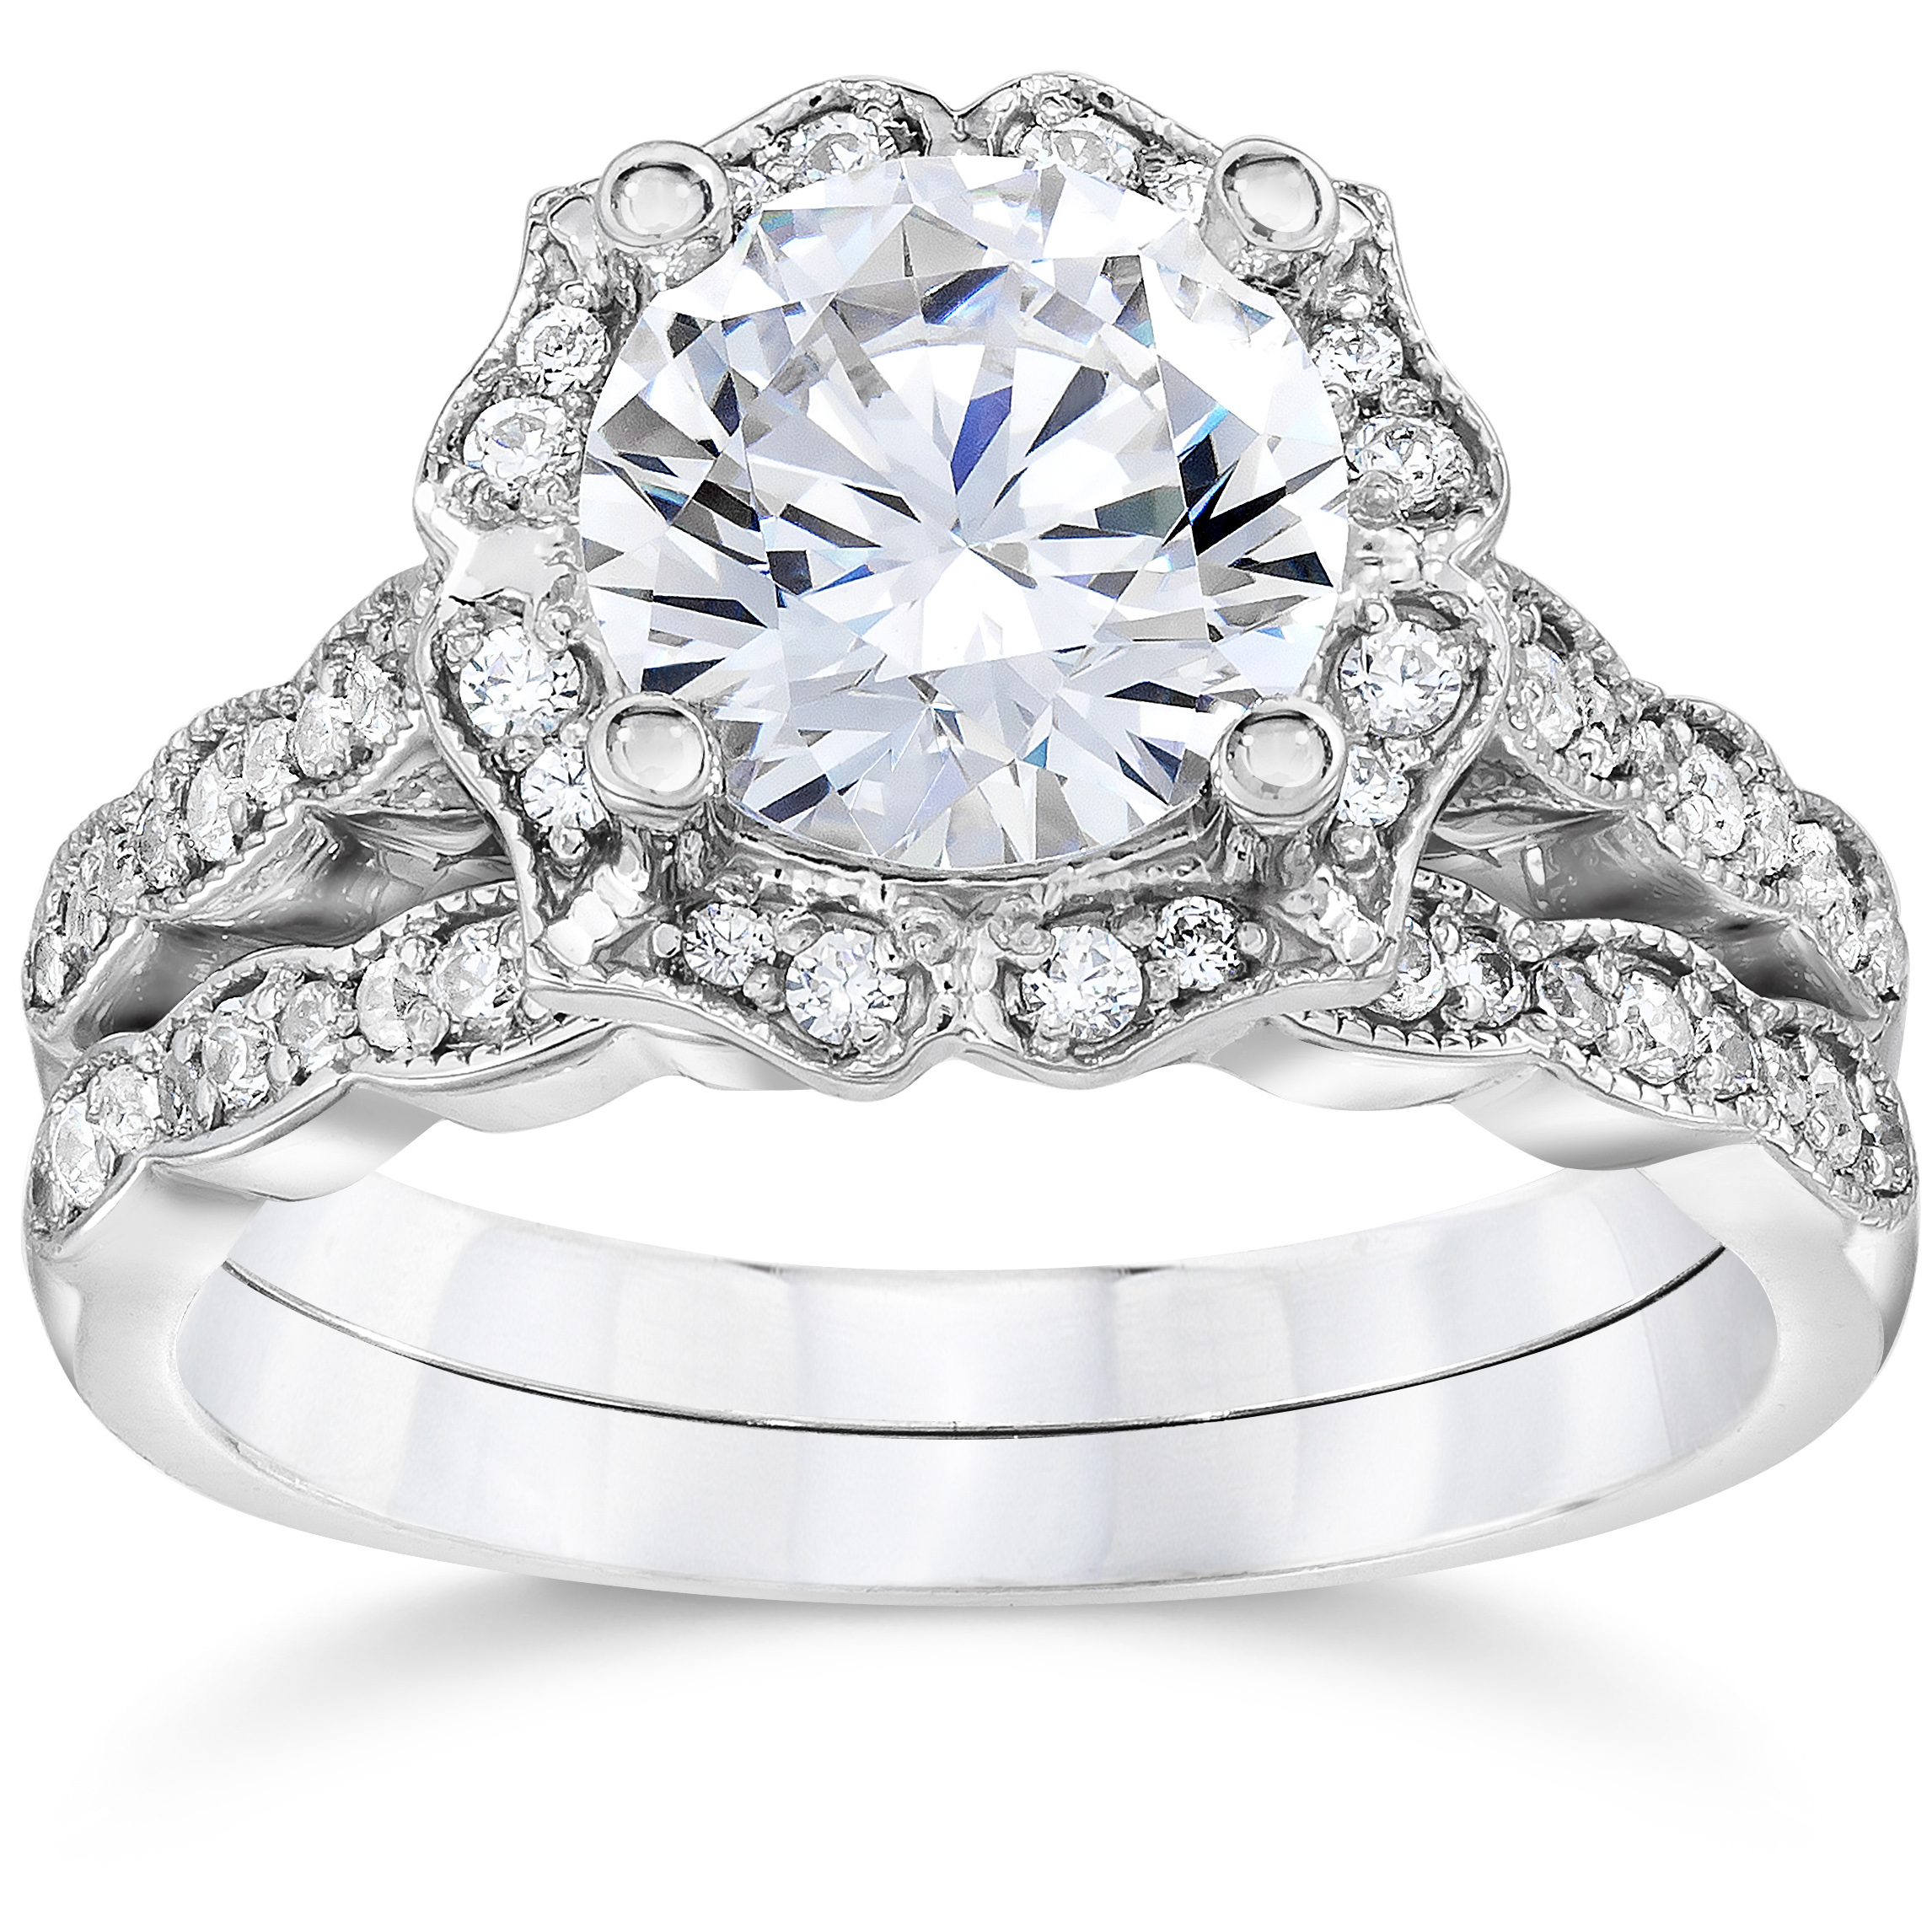 2.00Ct Diamond Vintage Halo Engagement Ring 14K White Gold Wedding Ring Set by Pompeii3